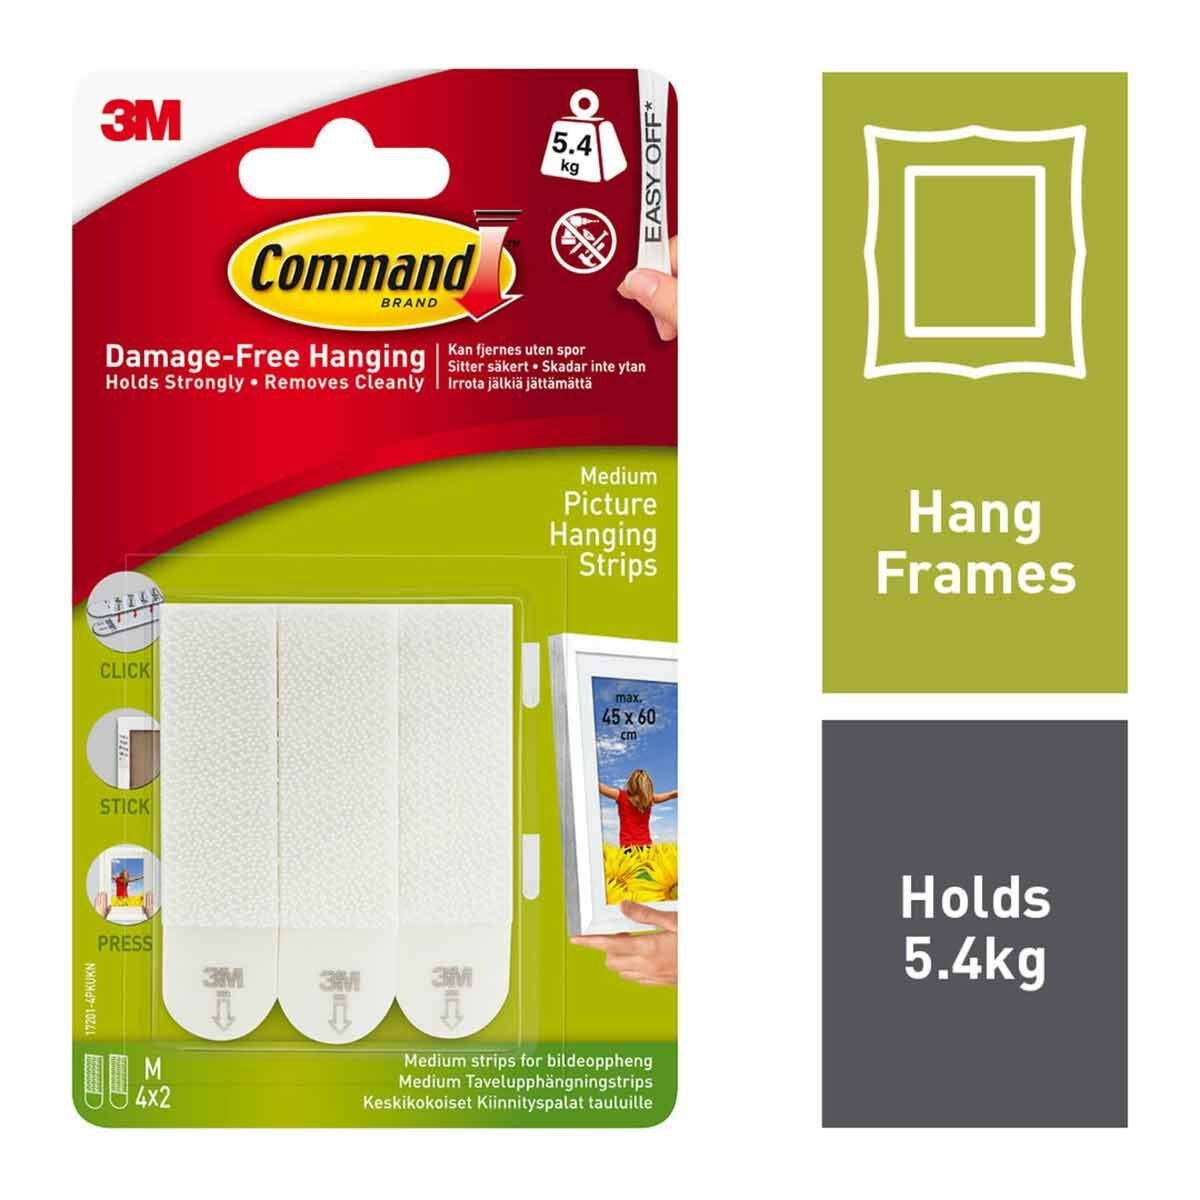 3M Command Picture Hanging Strips Pack of 4